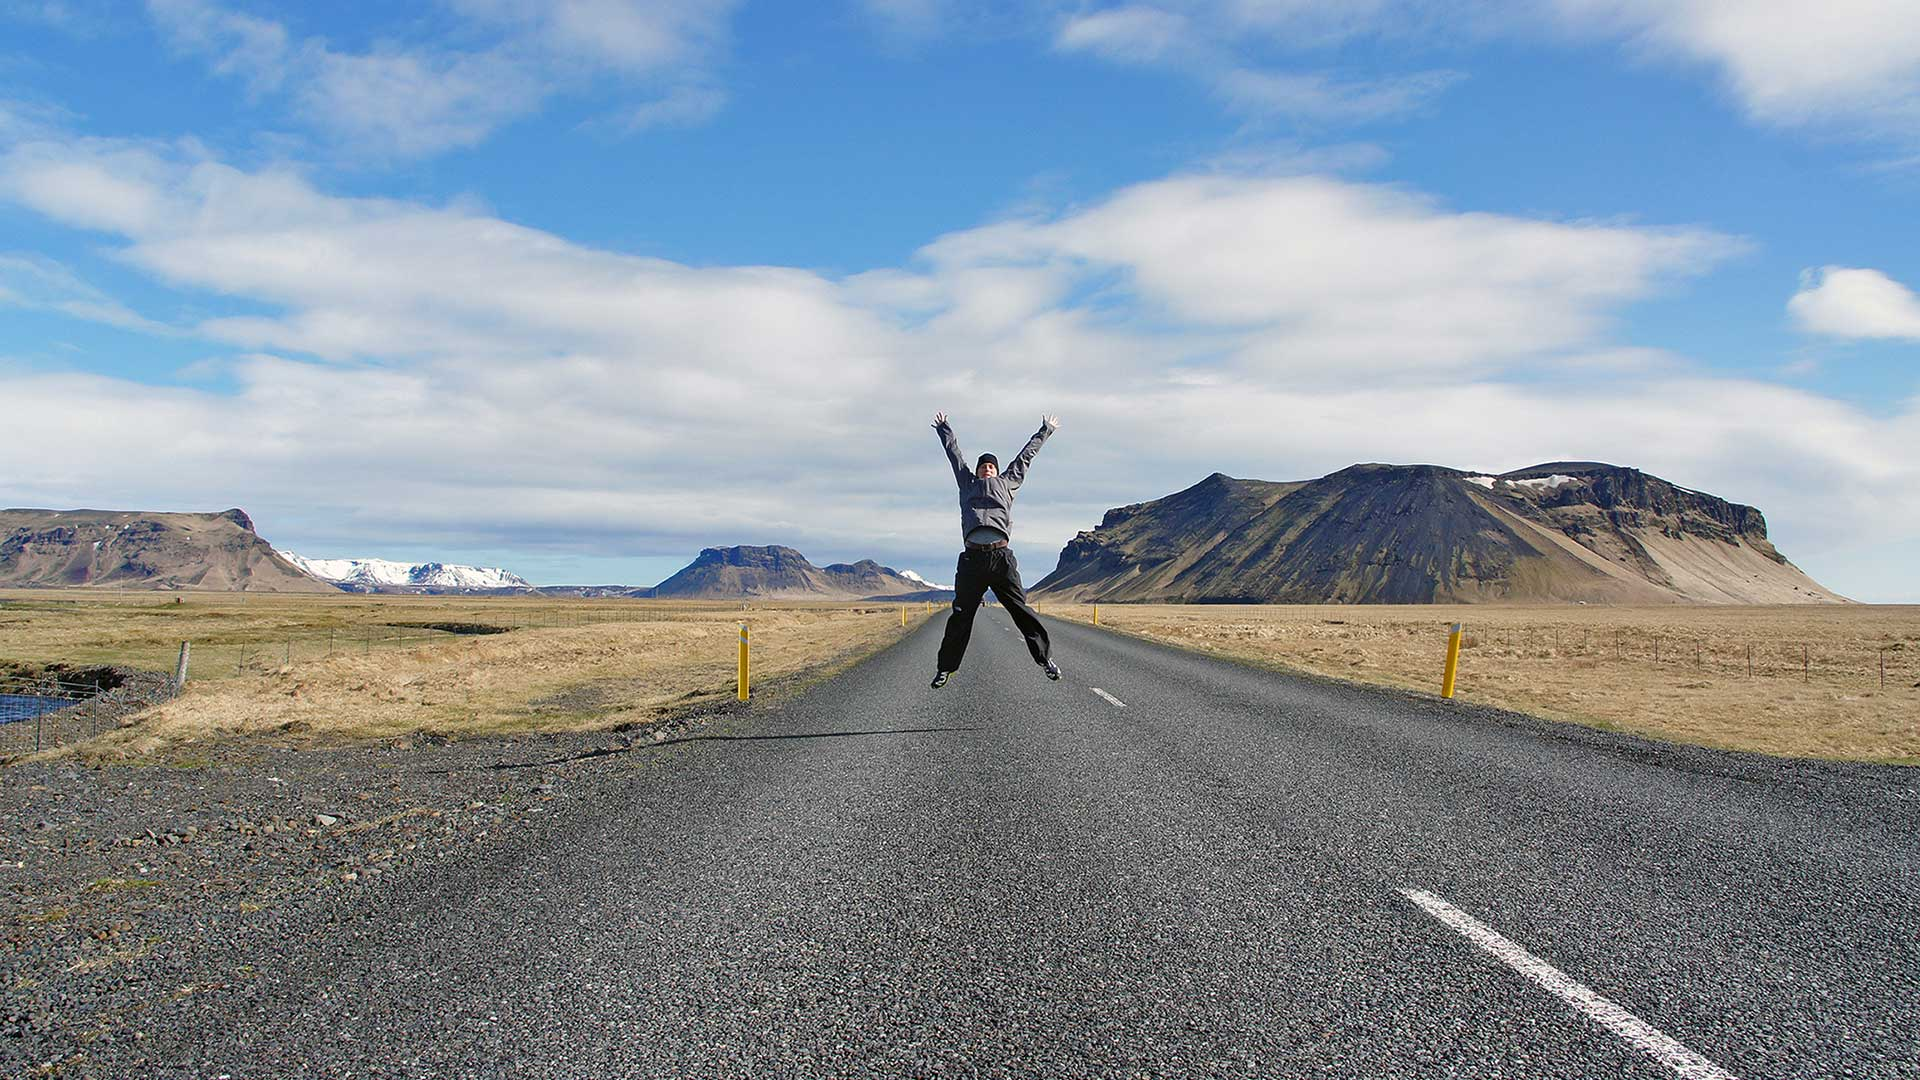 Vincent Schenk on Route 1 near Dyrhólaey in South Iceland. (Note: Please use caution when posing on or near roads.)